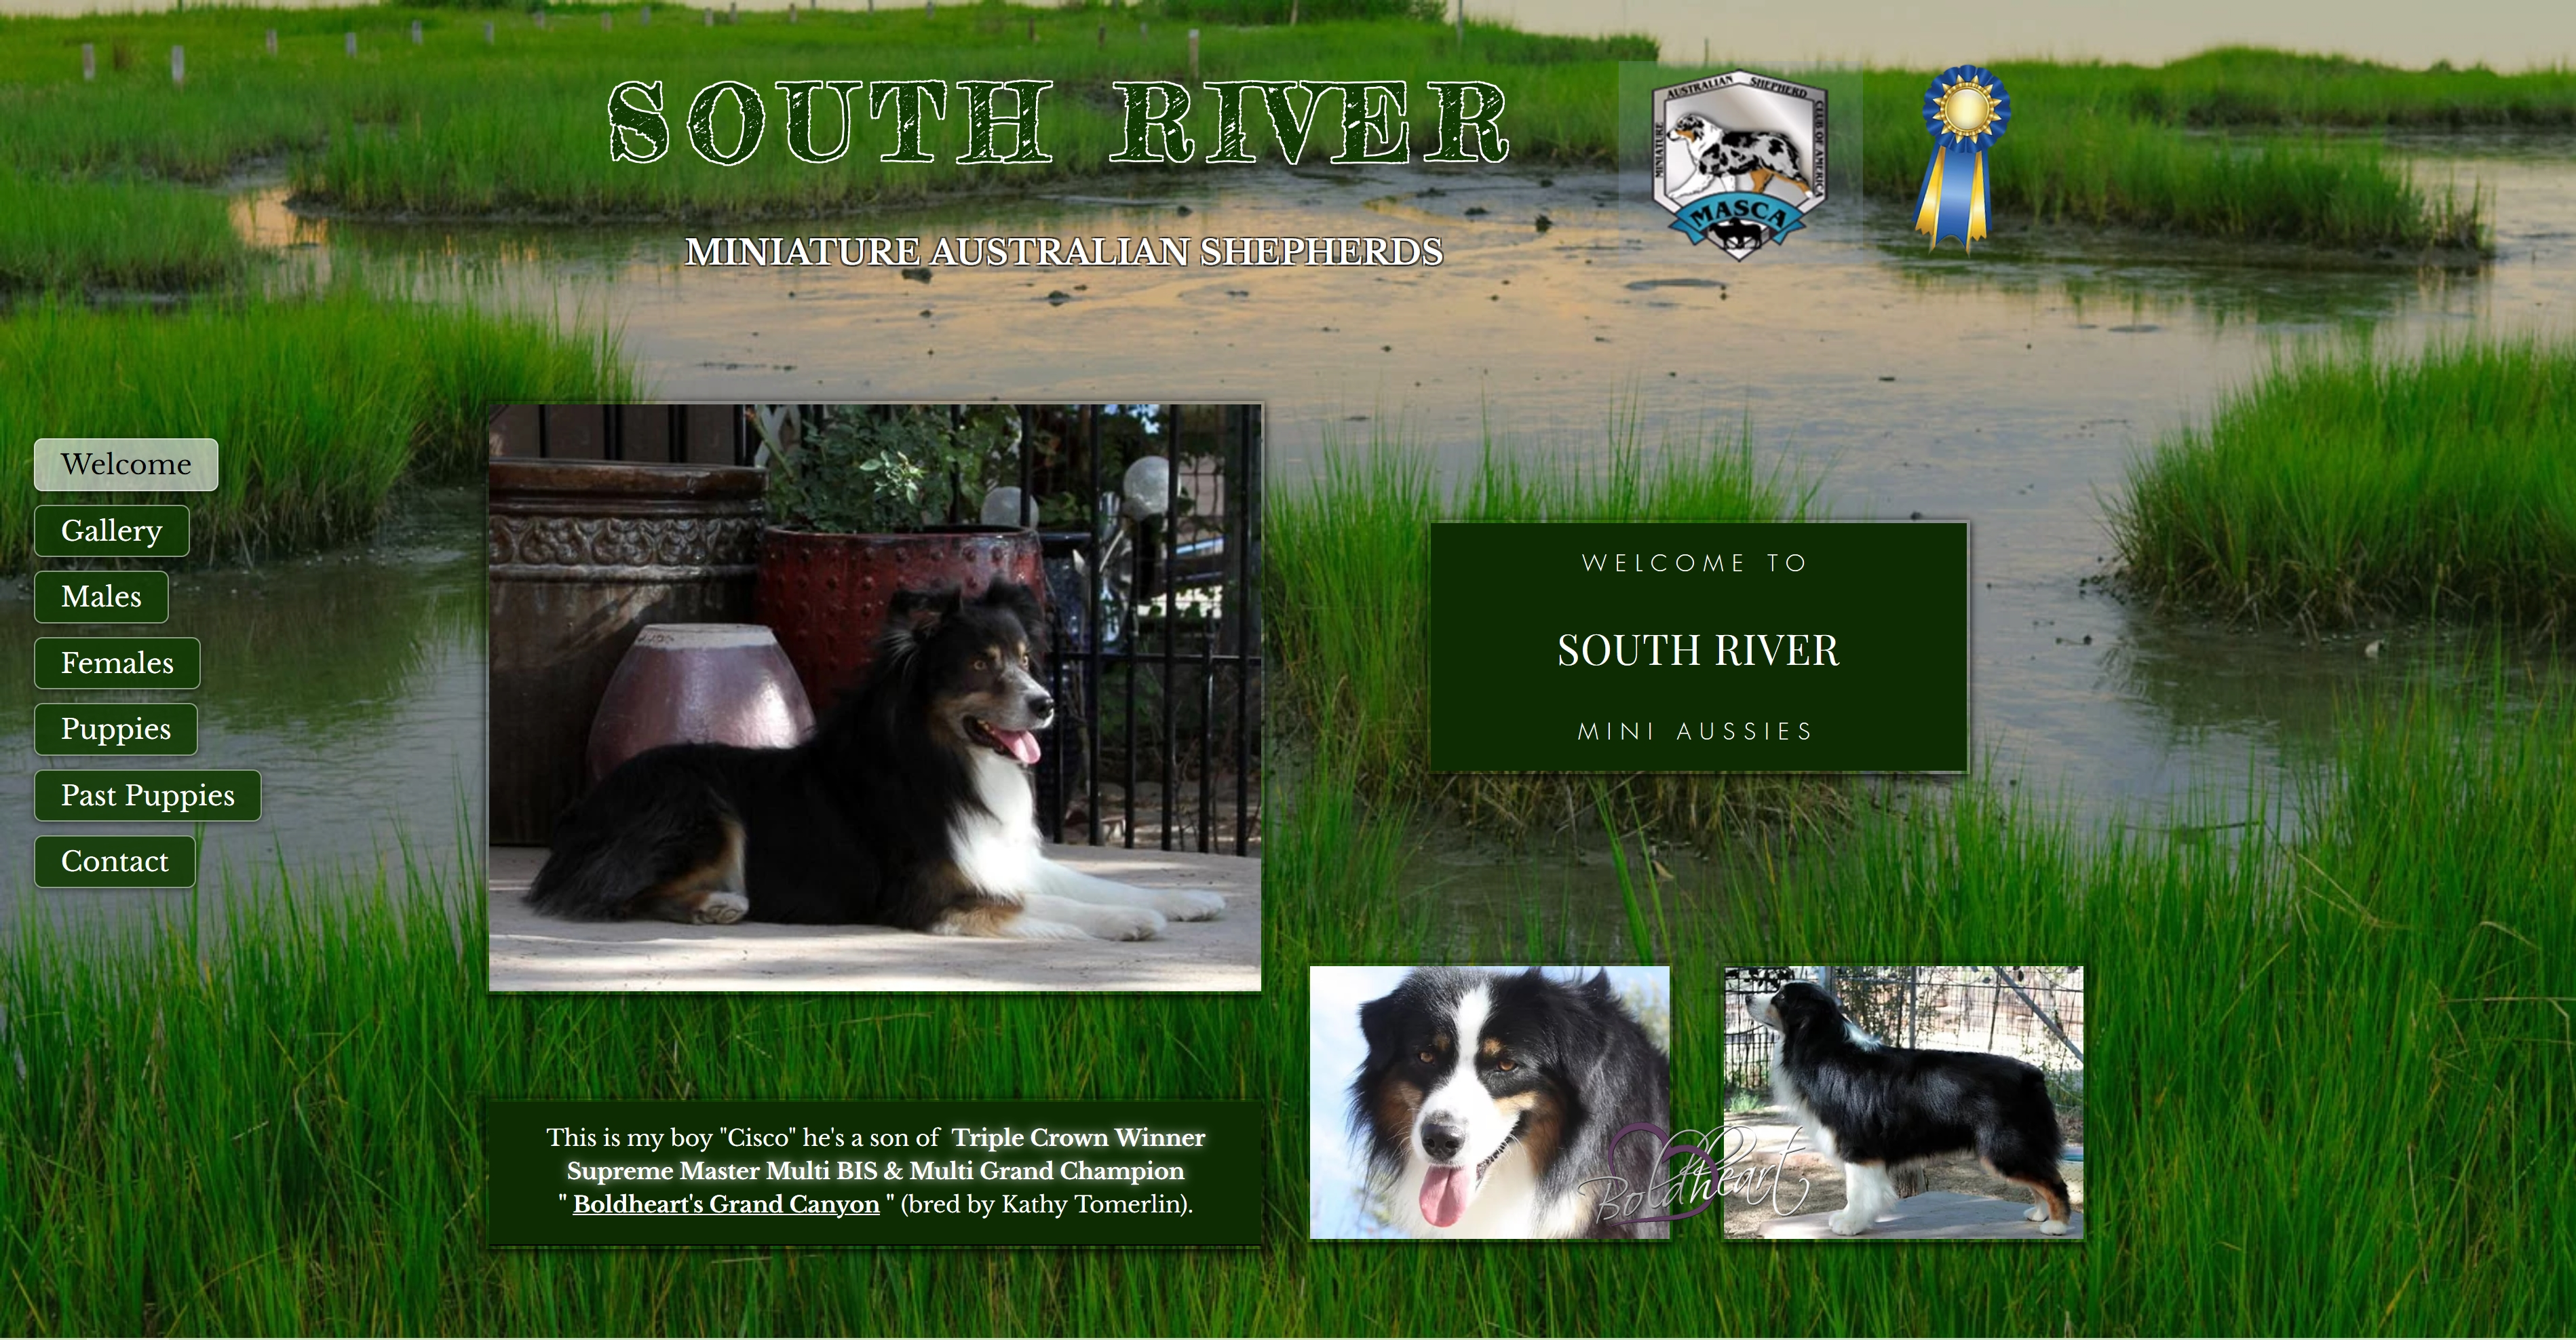 South River Mini Aussies